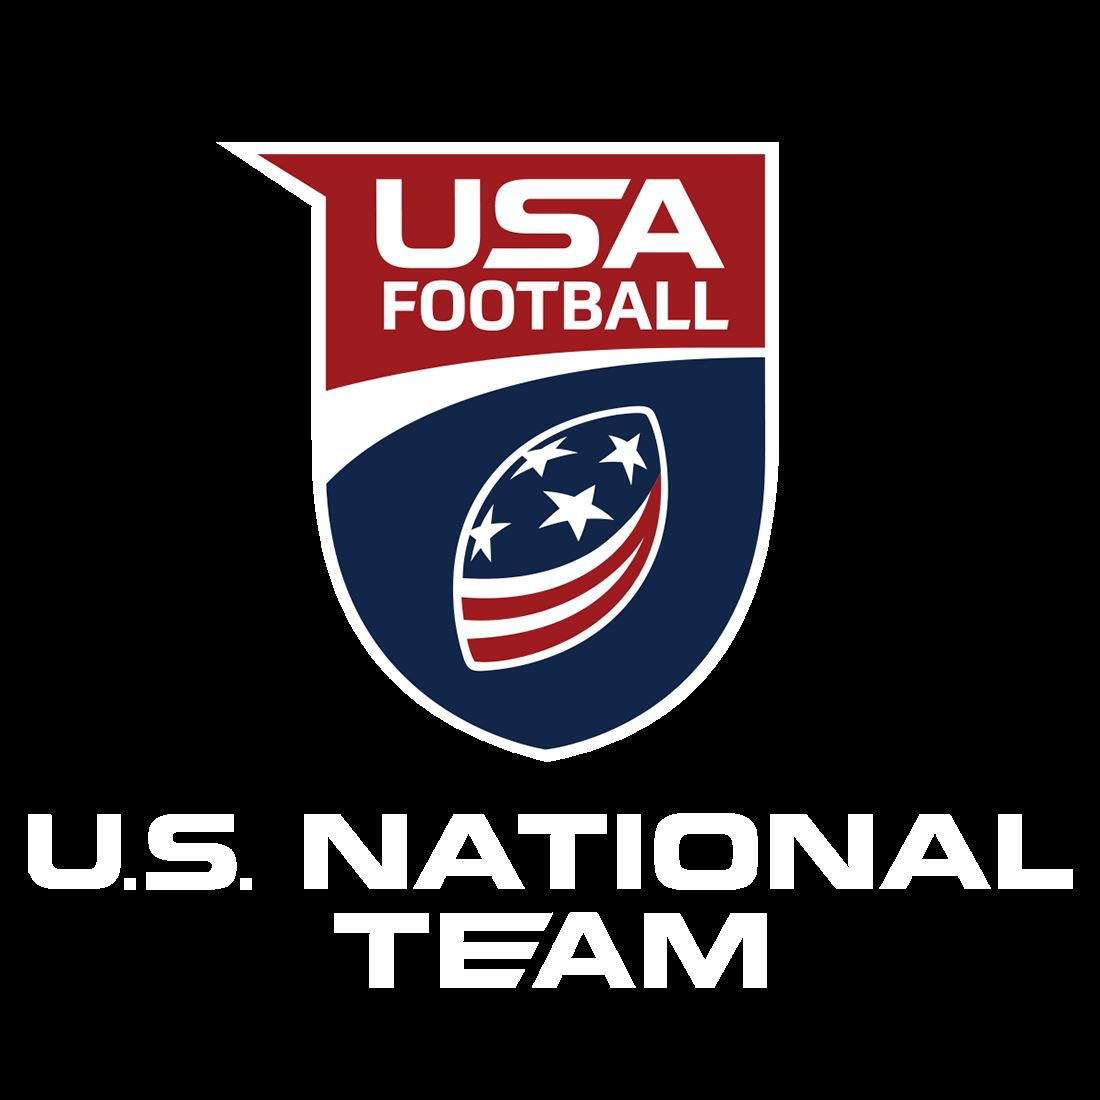 USA Football - Under-17 National Team